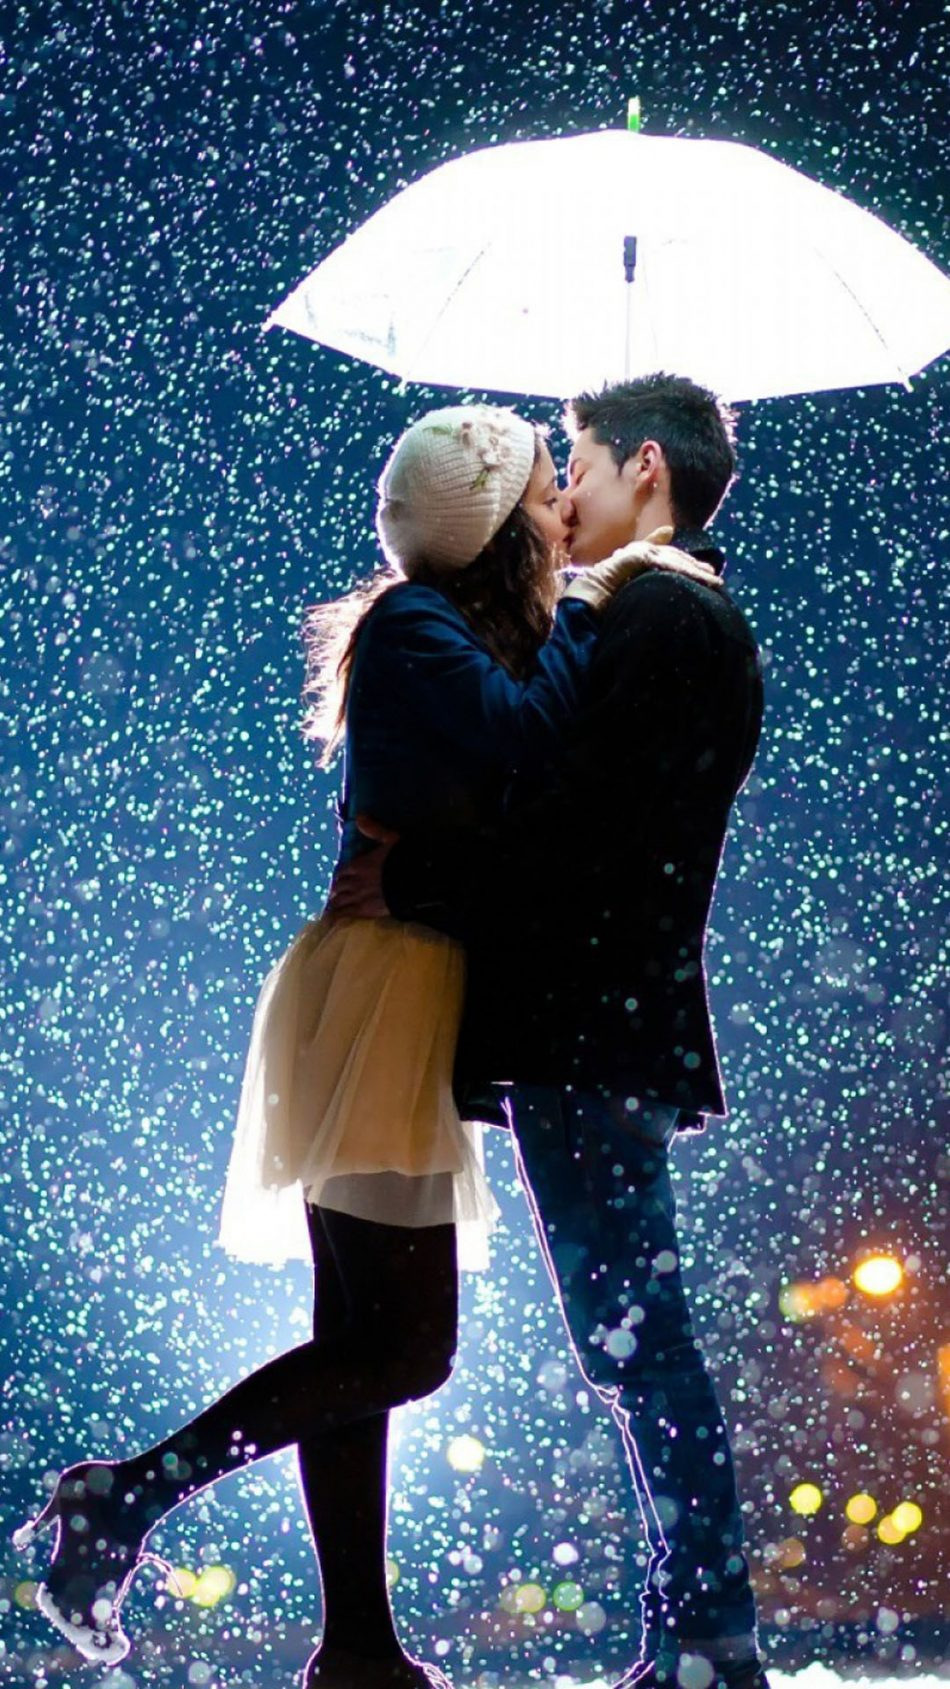 Couple kissing raining umbrella hd mobile wallpaper